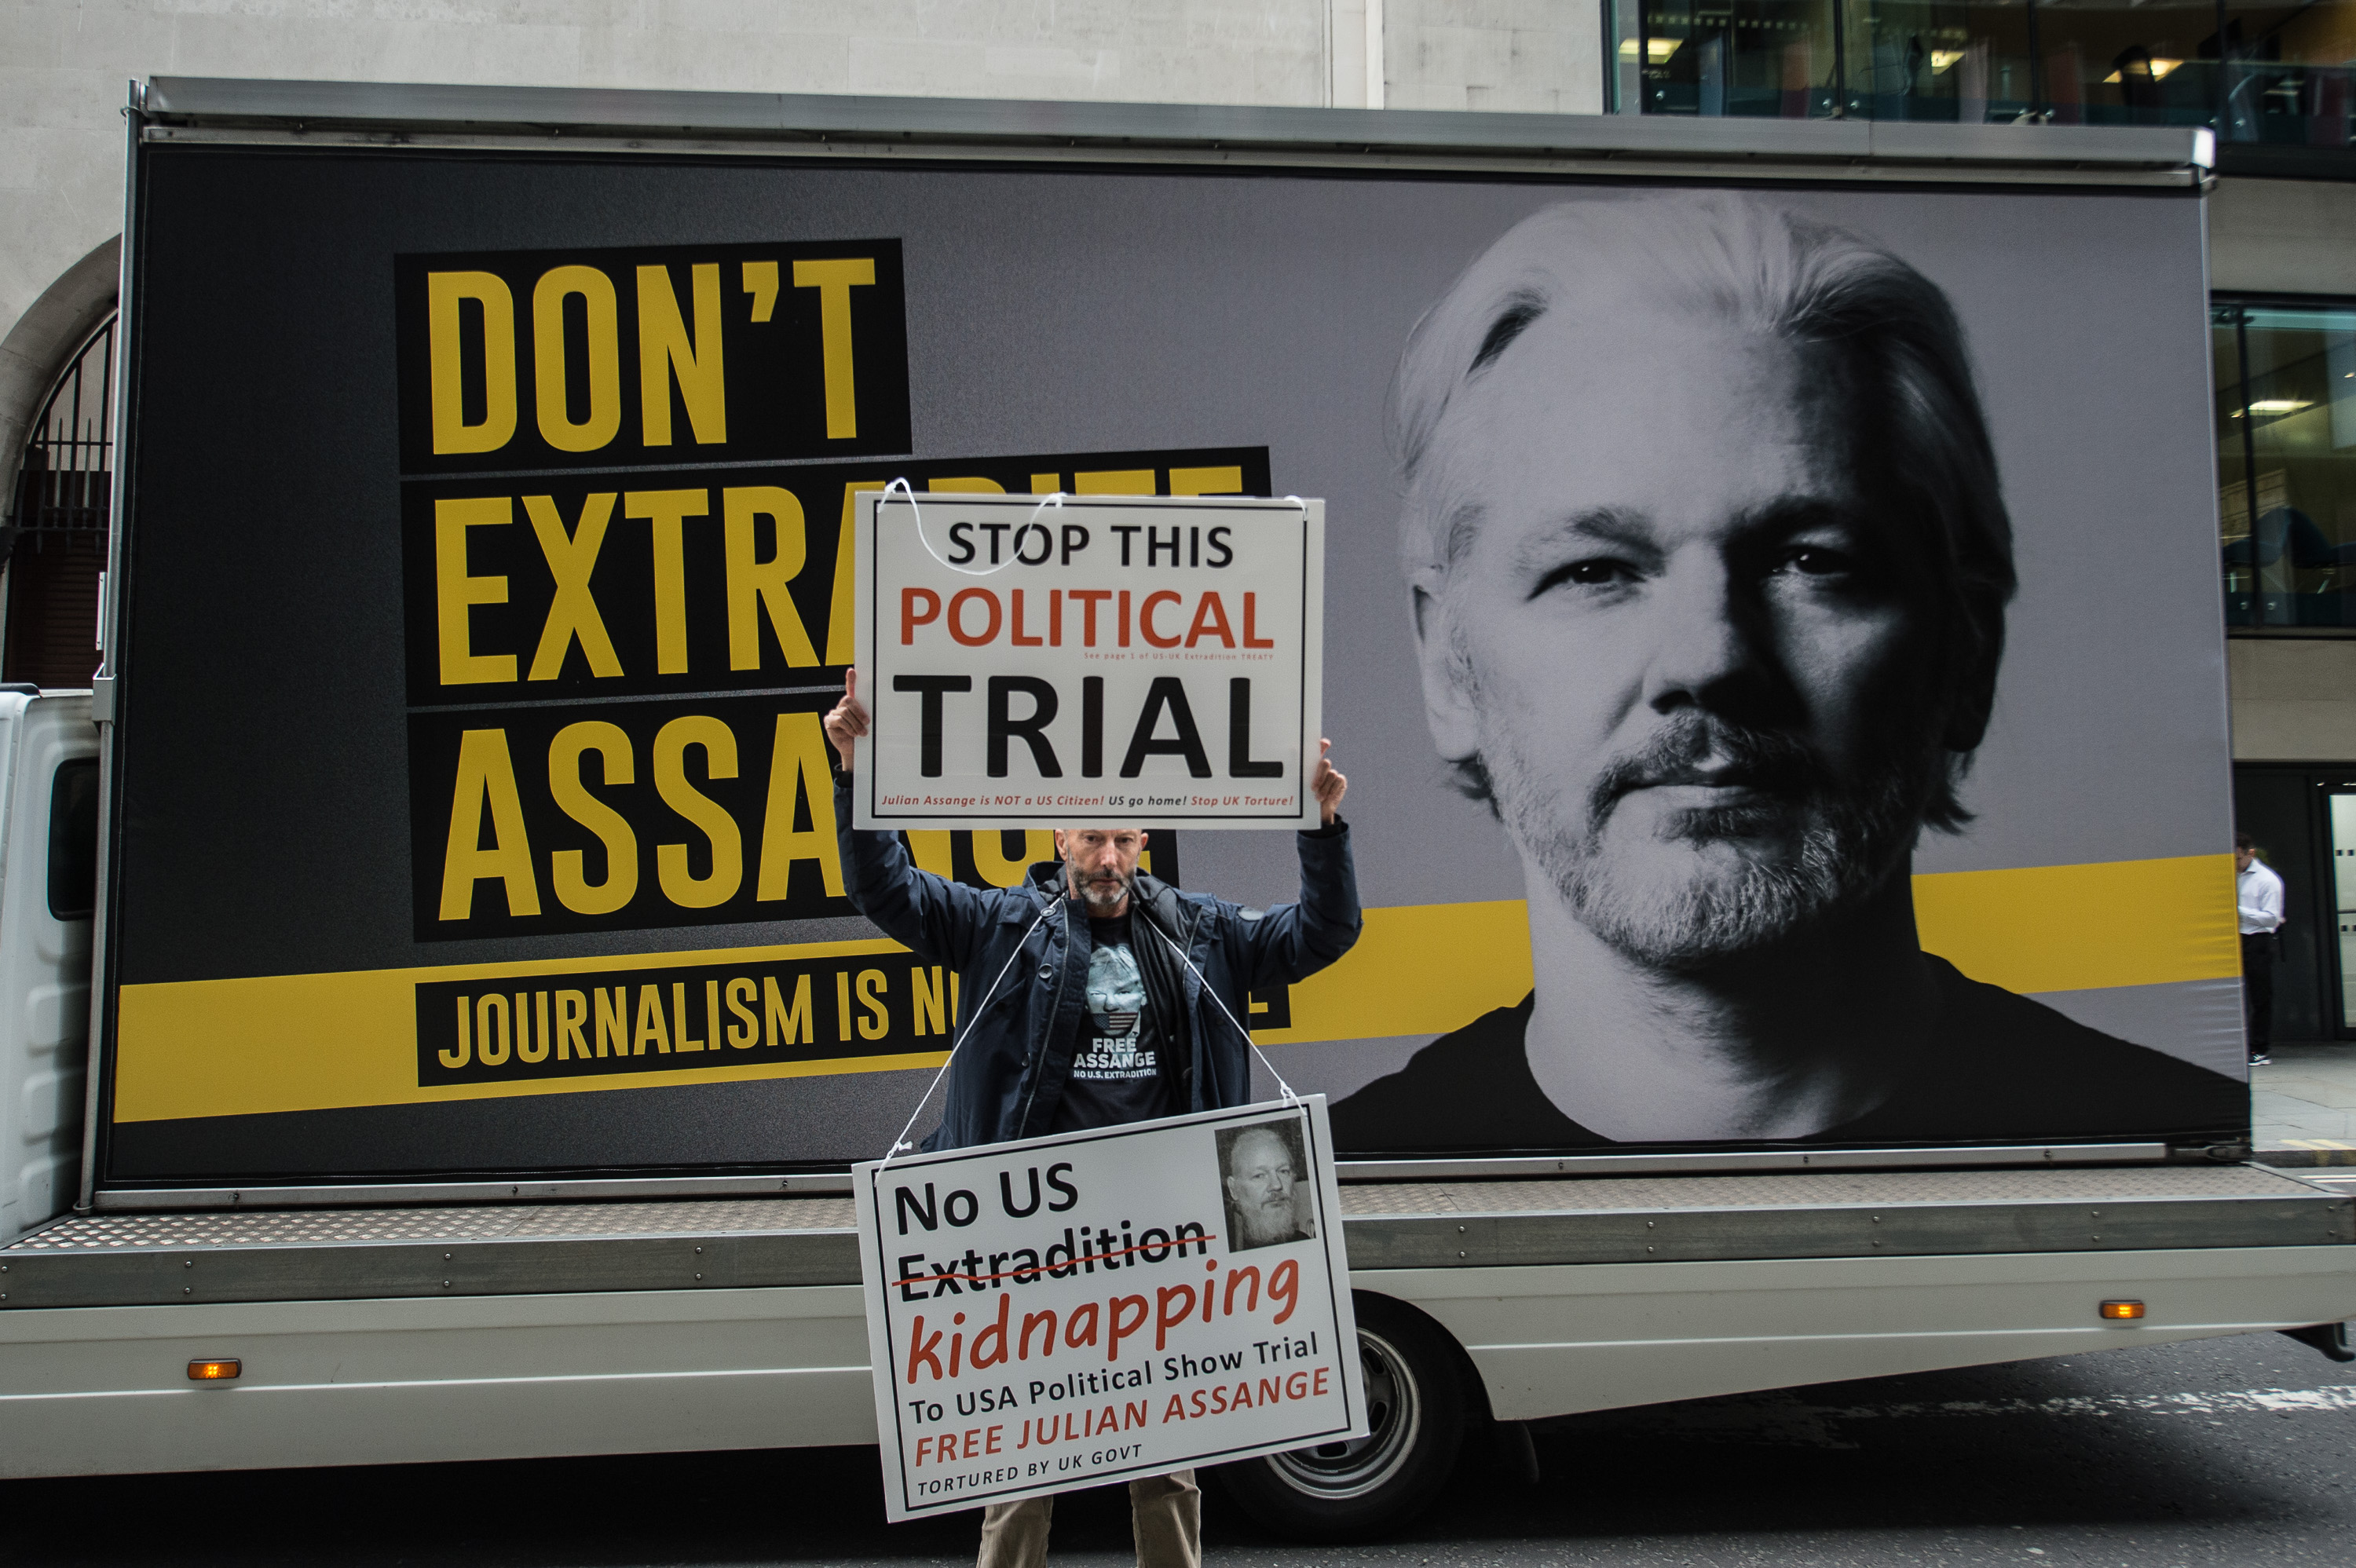 Assange Court Report September 14: Morning